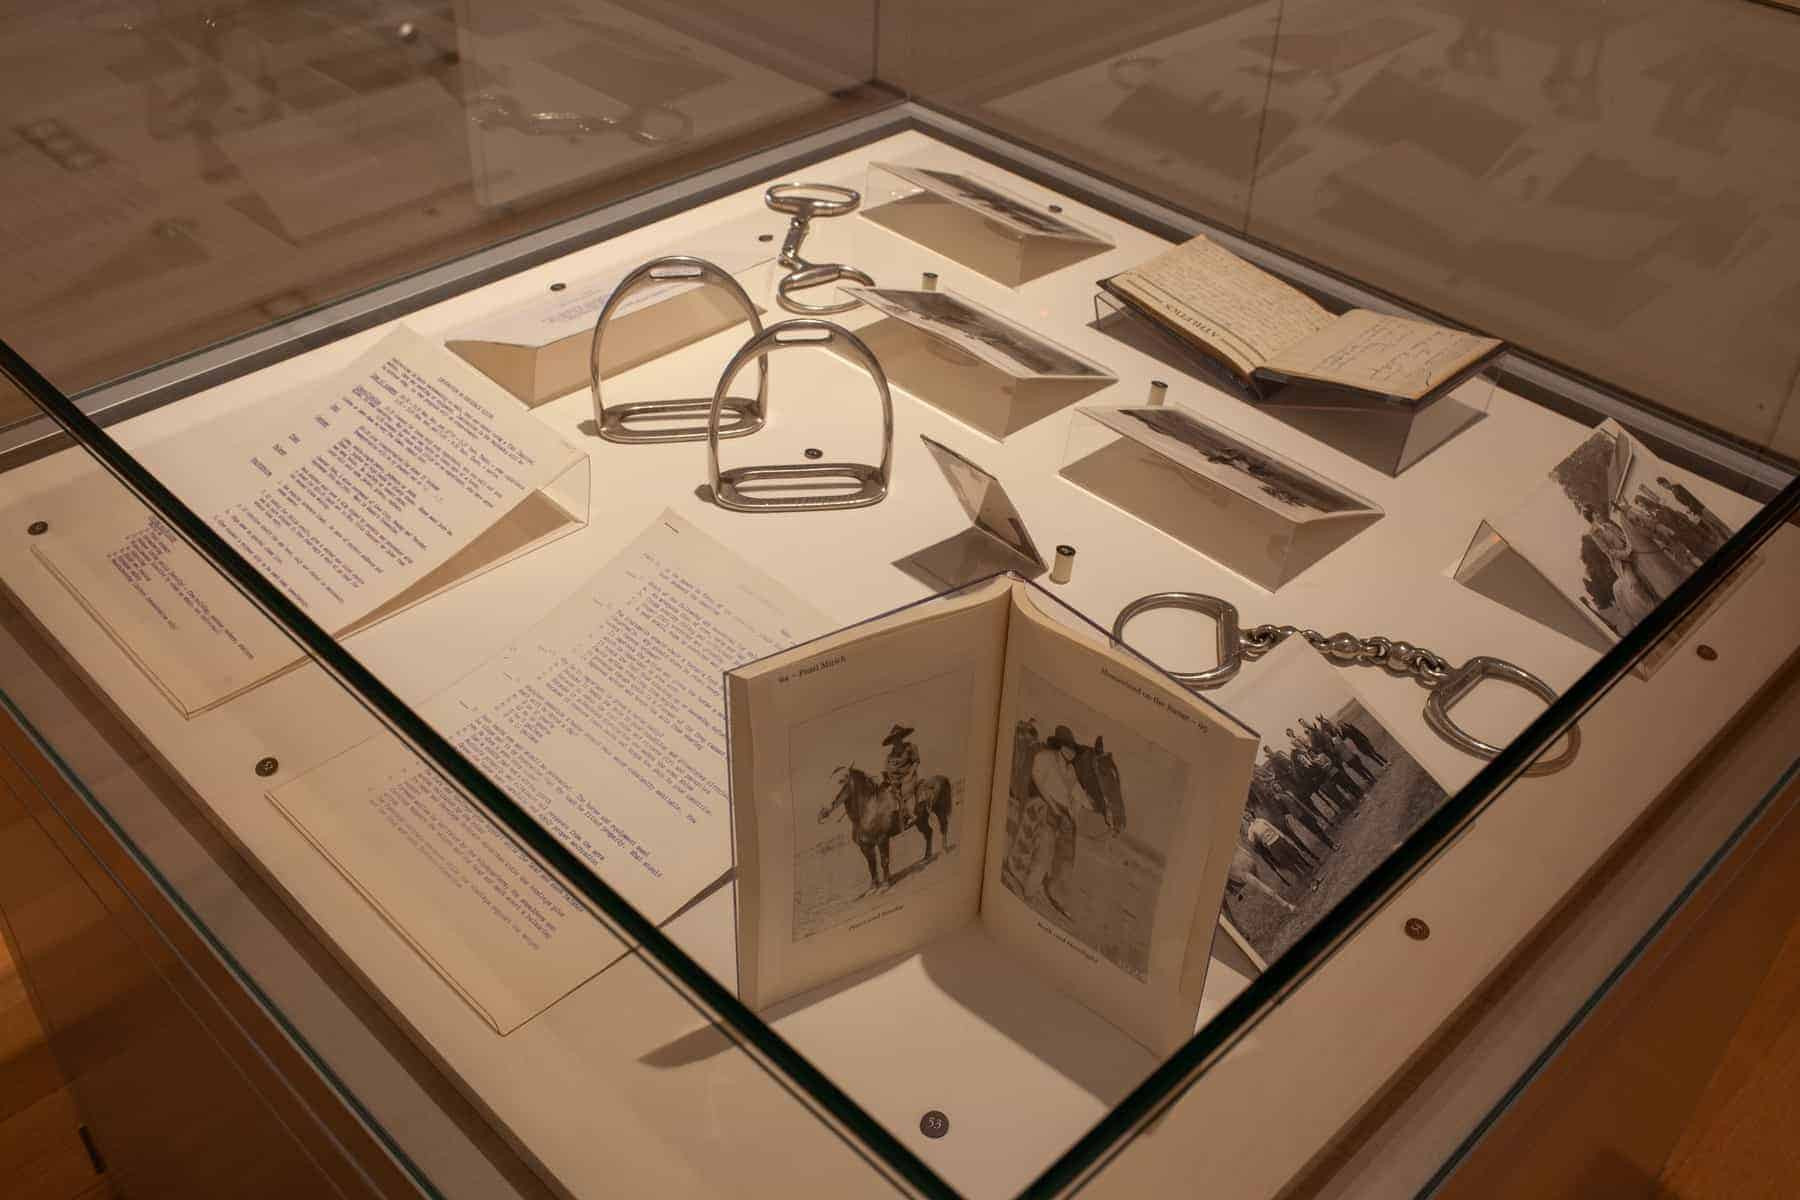 A large, square case in the gallery holds a variety of objects. Photographs and a test related to horseback riding from UI's Women's Athletics Department in the 1950s, bits, stirrups, an autograph book, and a paperback standing vertically.